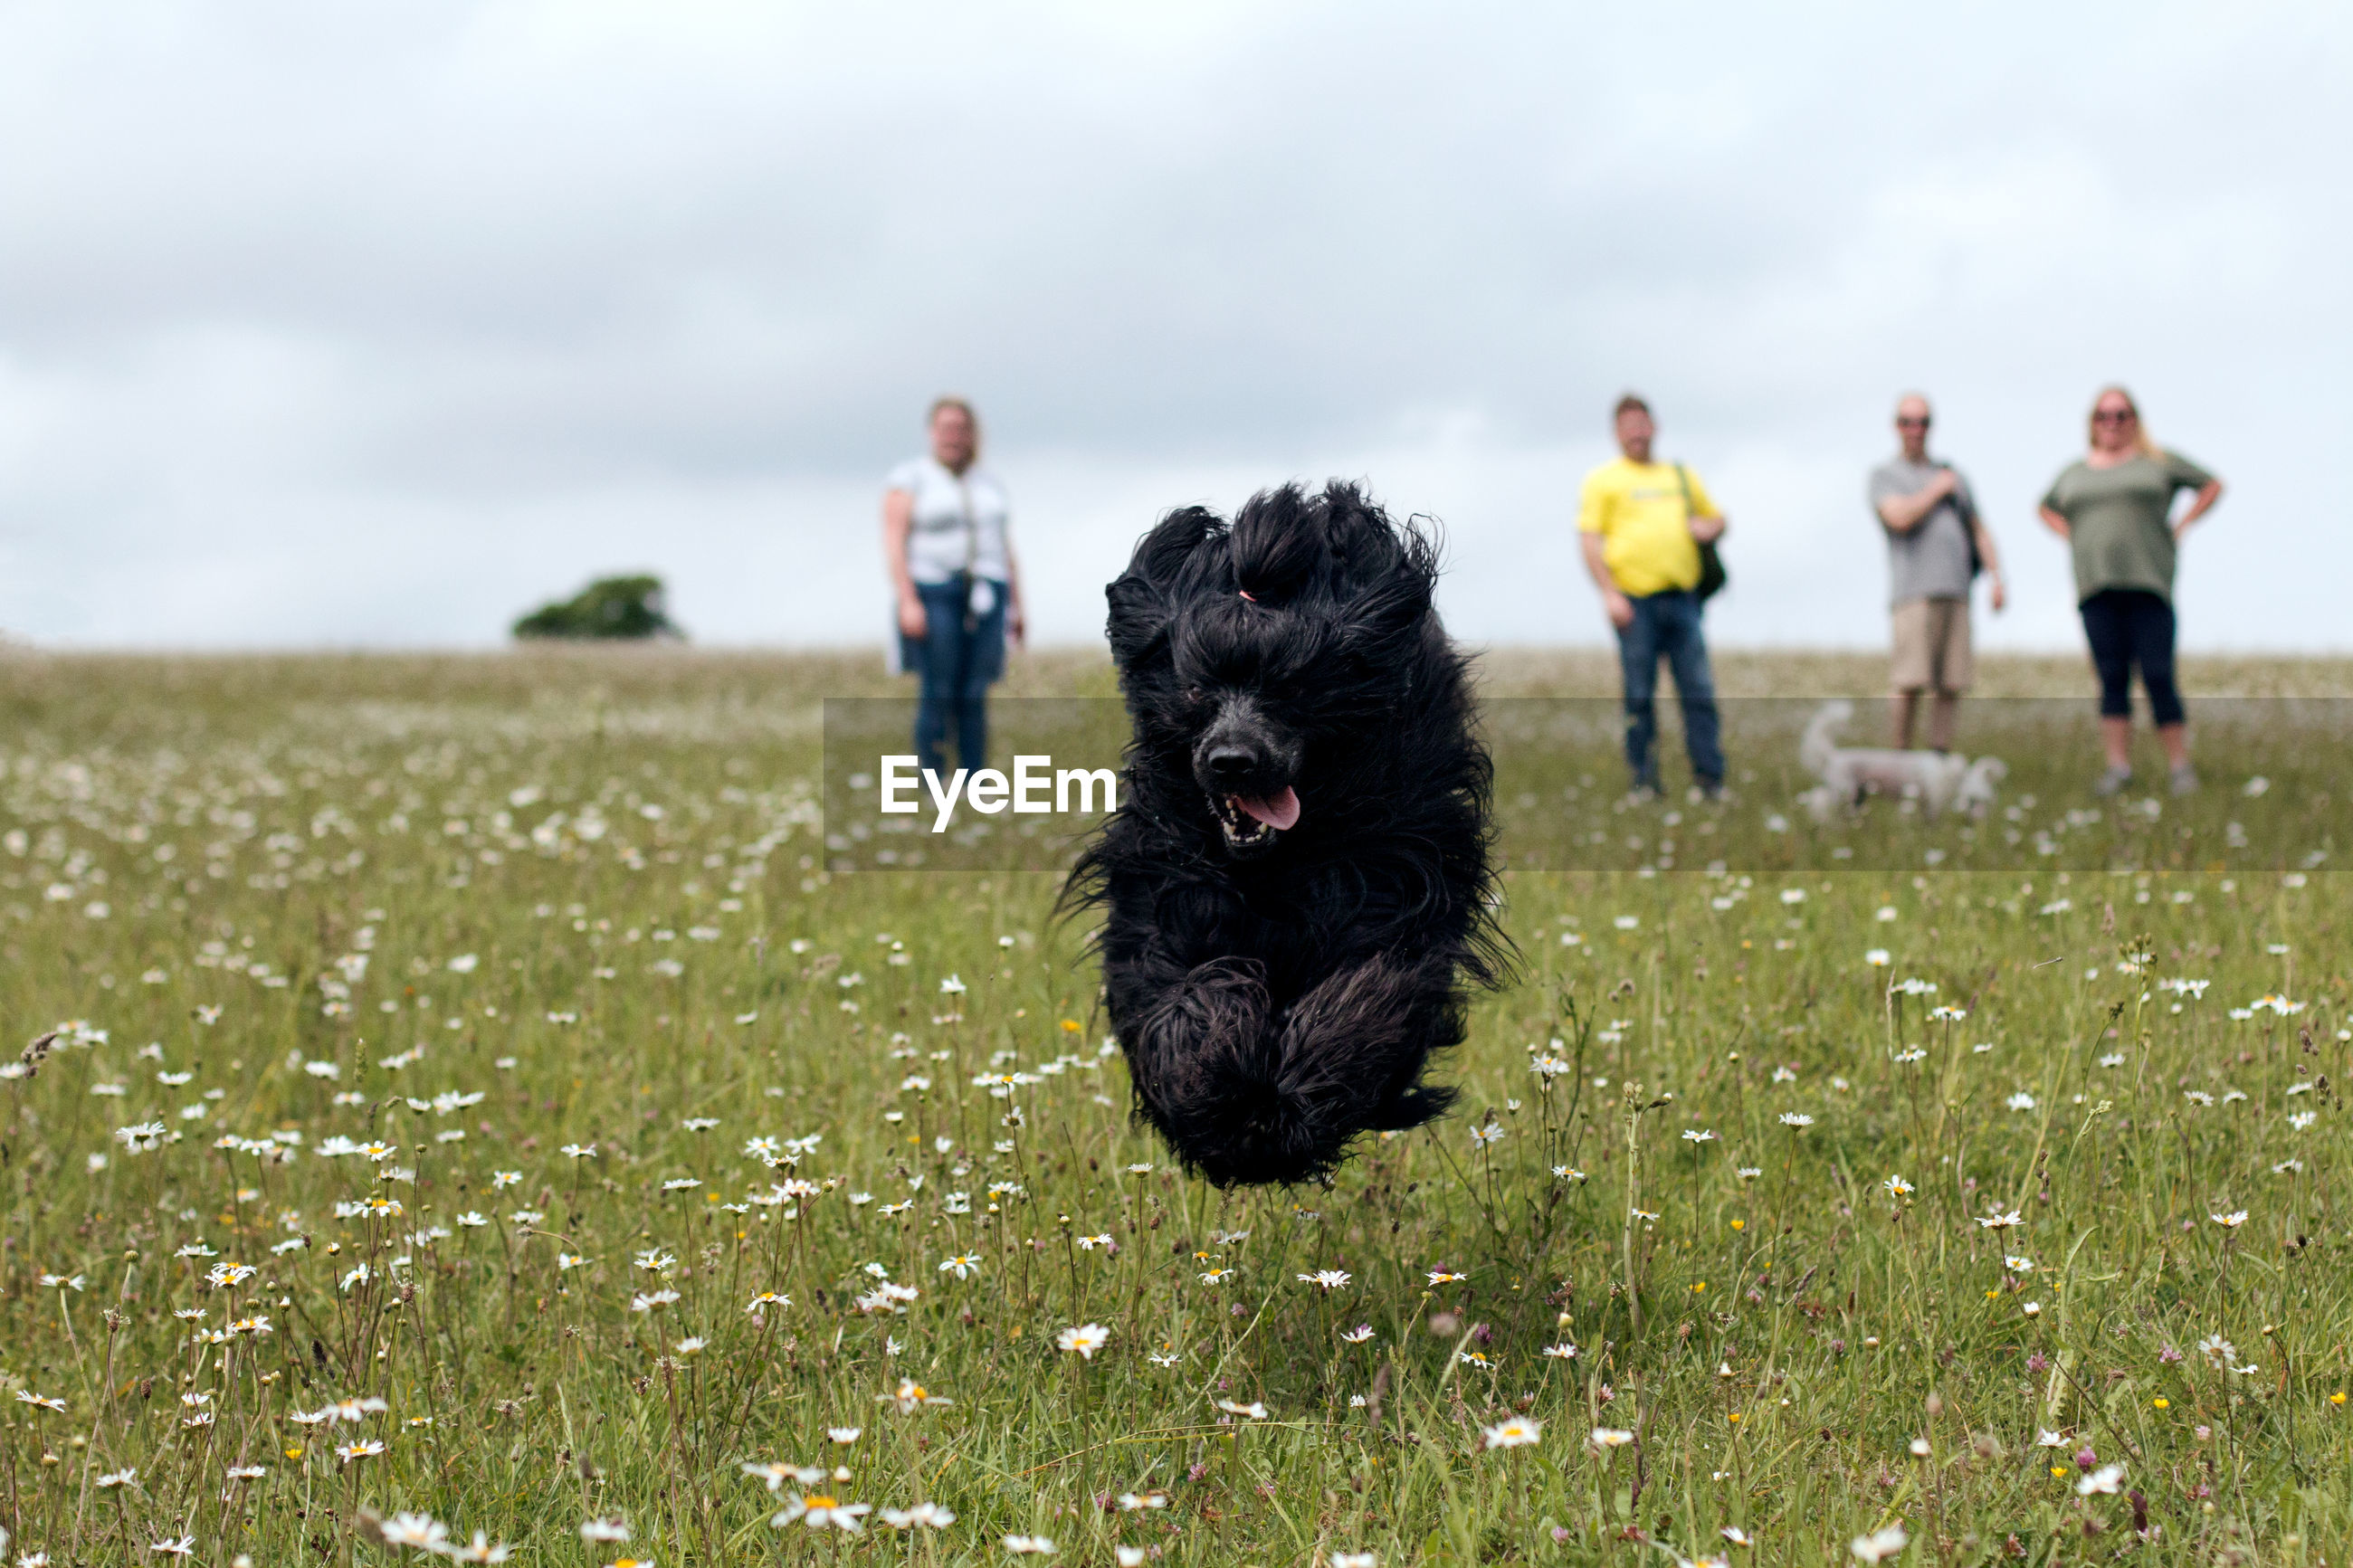 Portrait of portuguese water dog running on field against sky